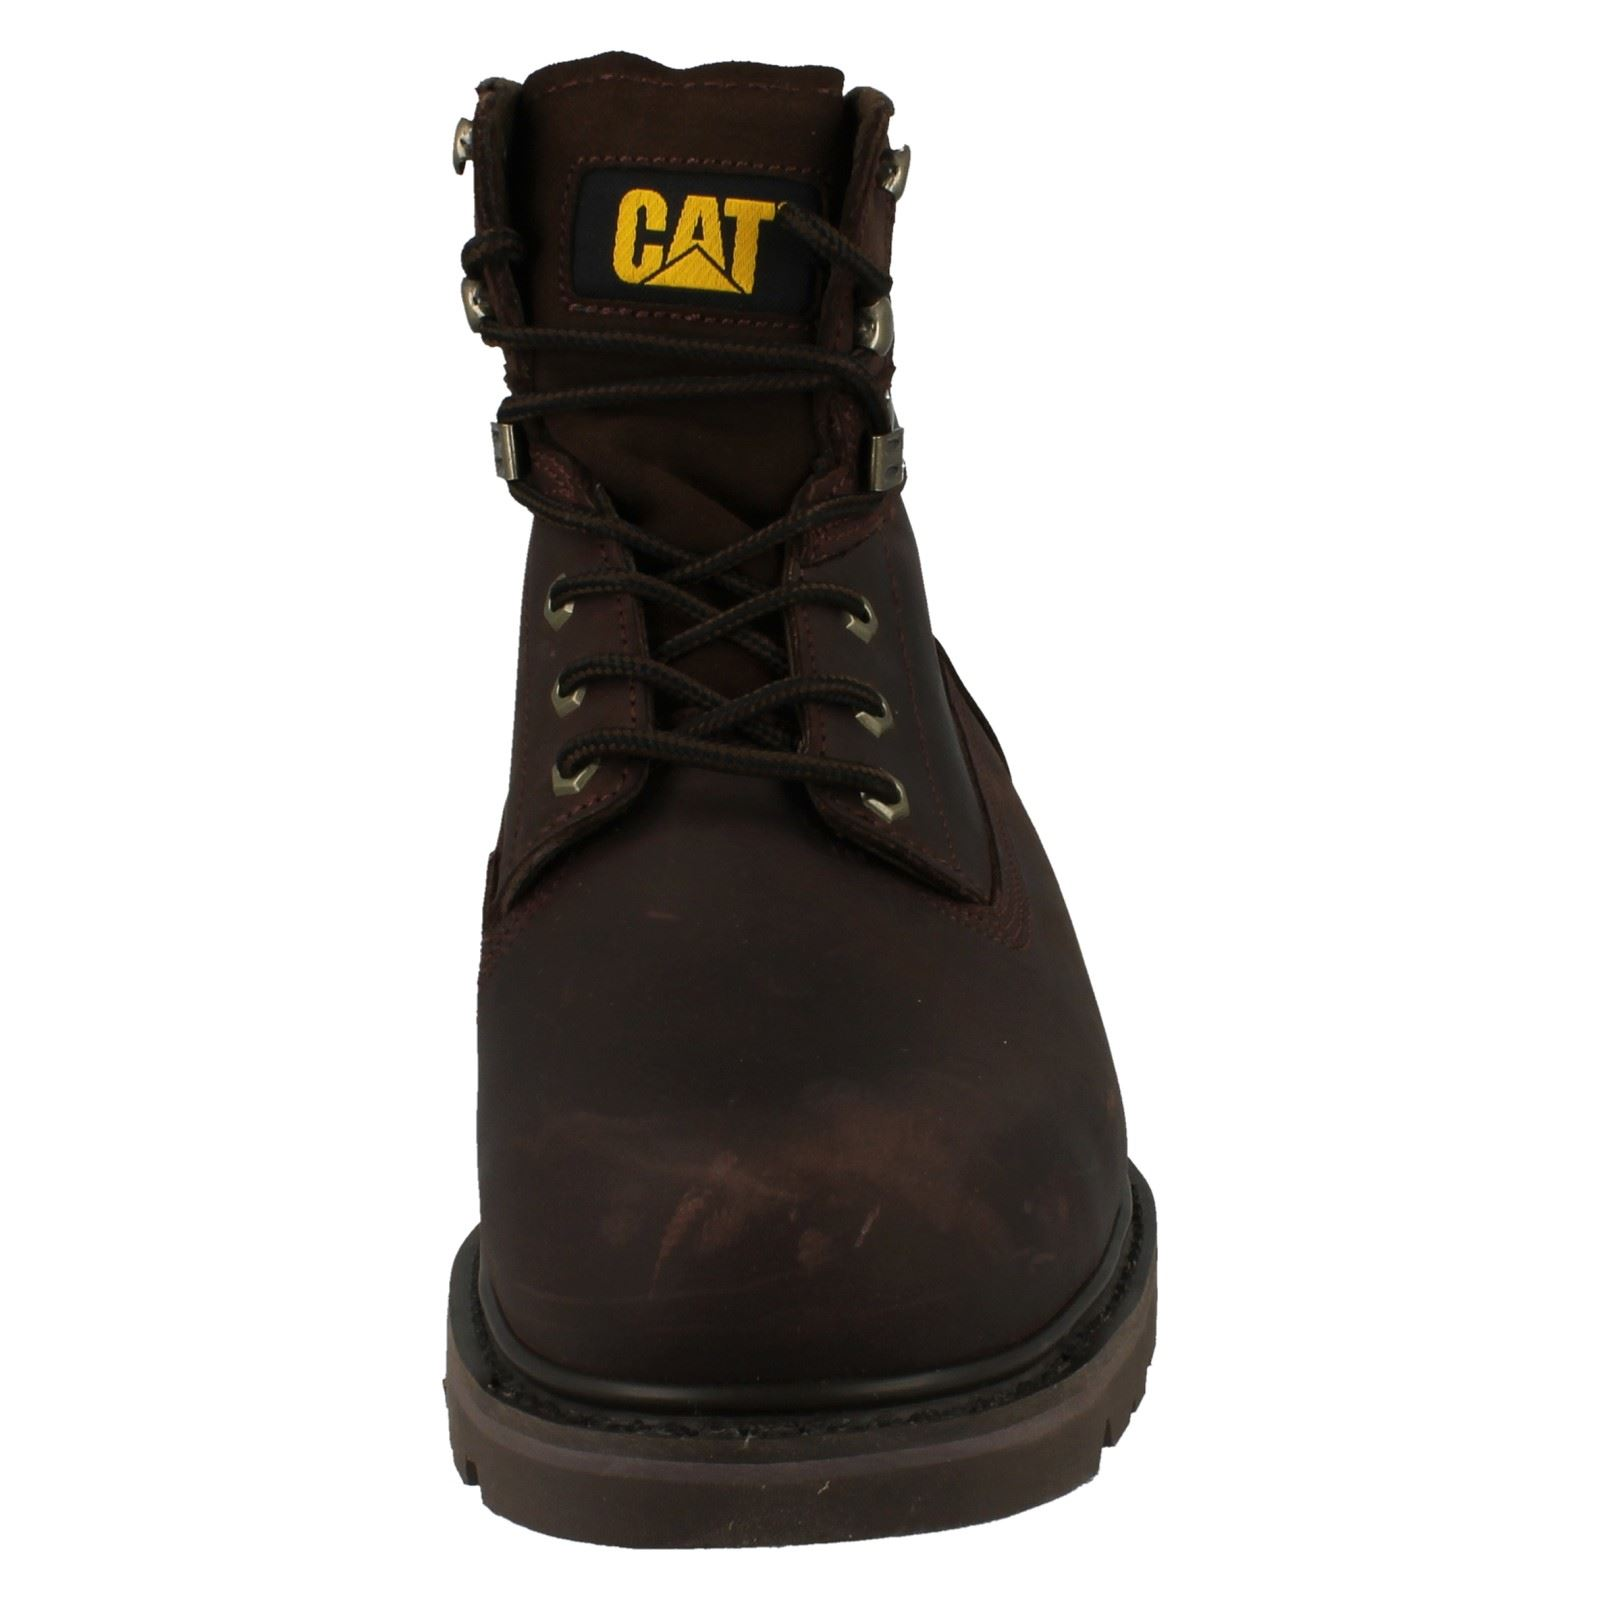 Mens Caterpillar Lace Up Boots Glendale